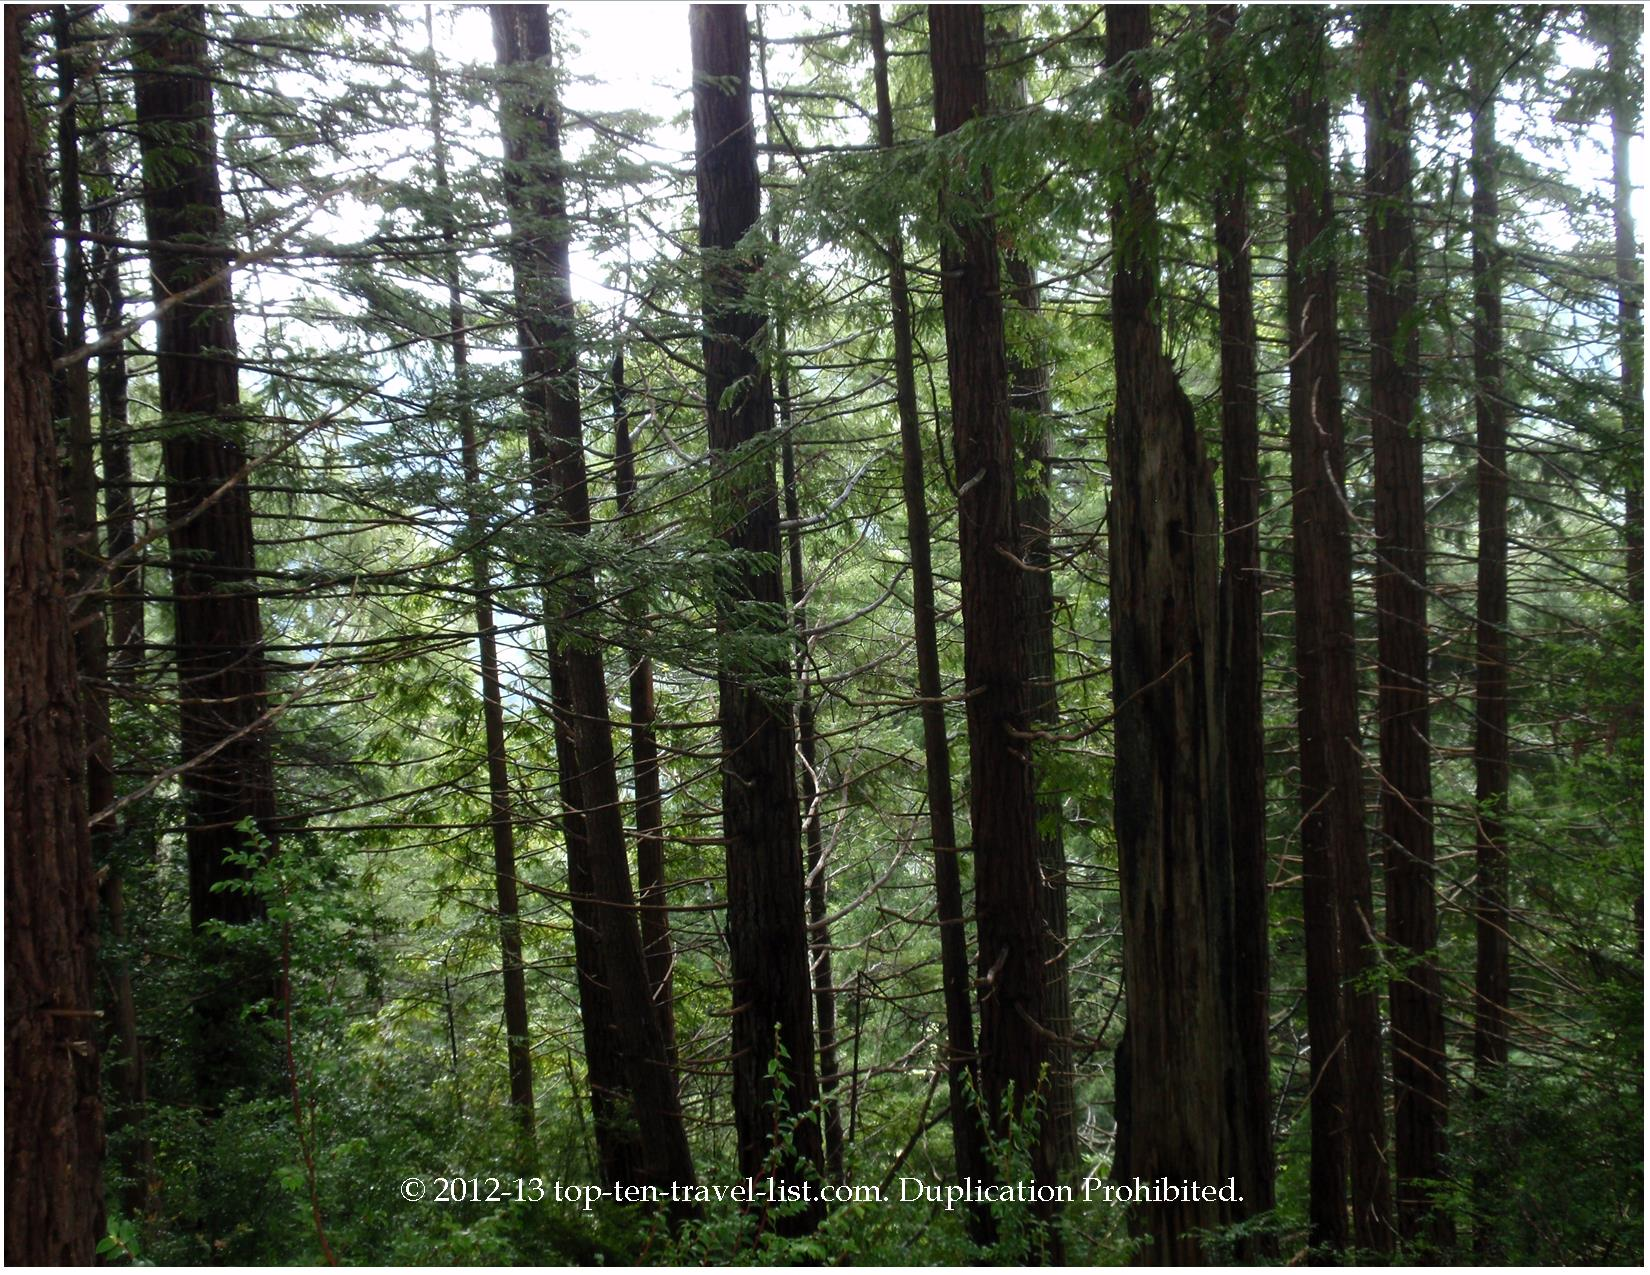 Coastal redwoods of Northern California